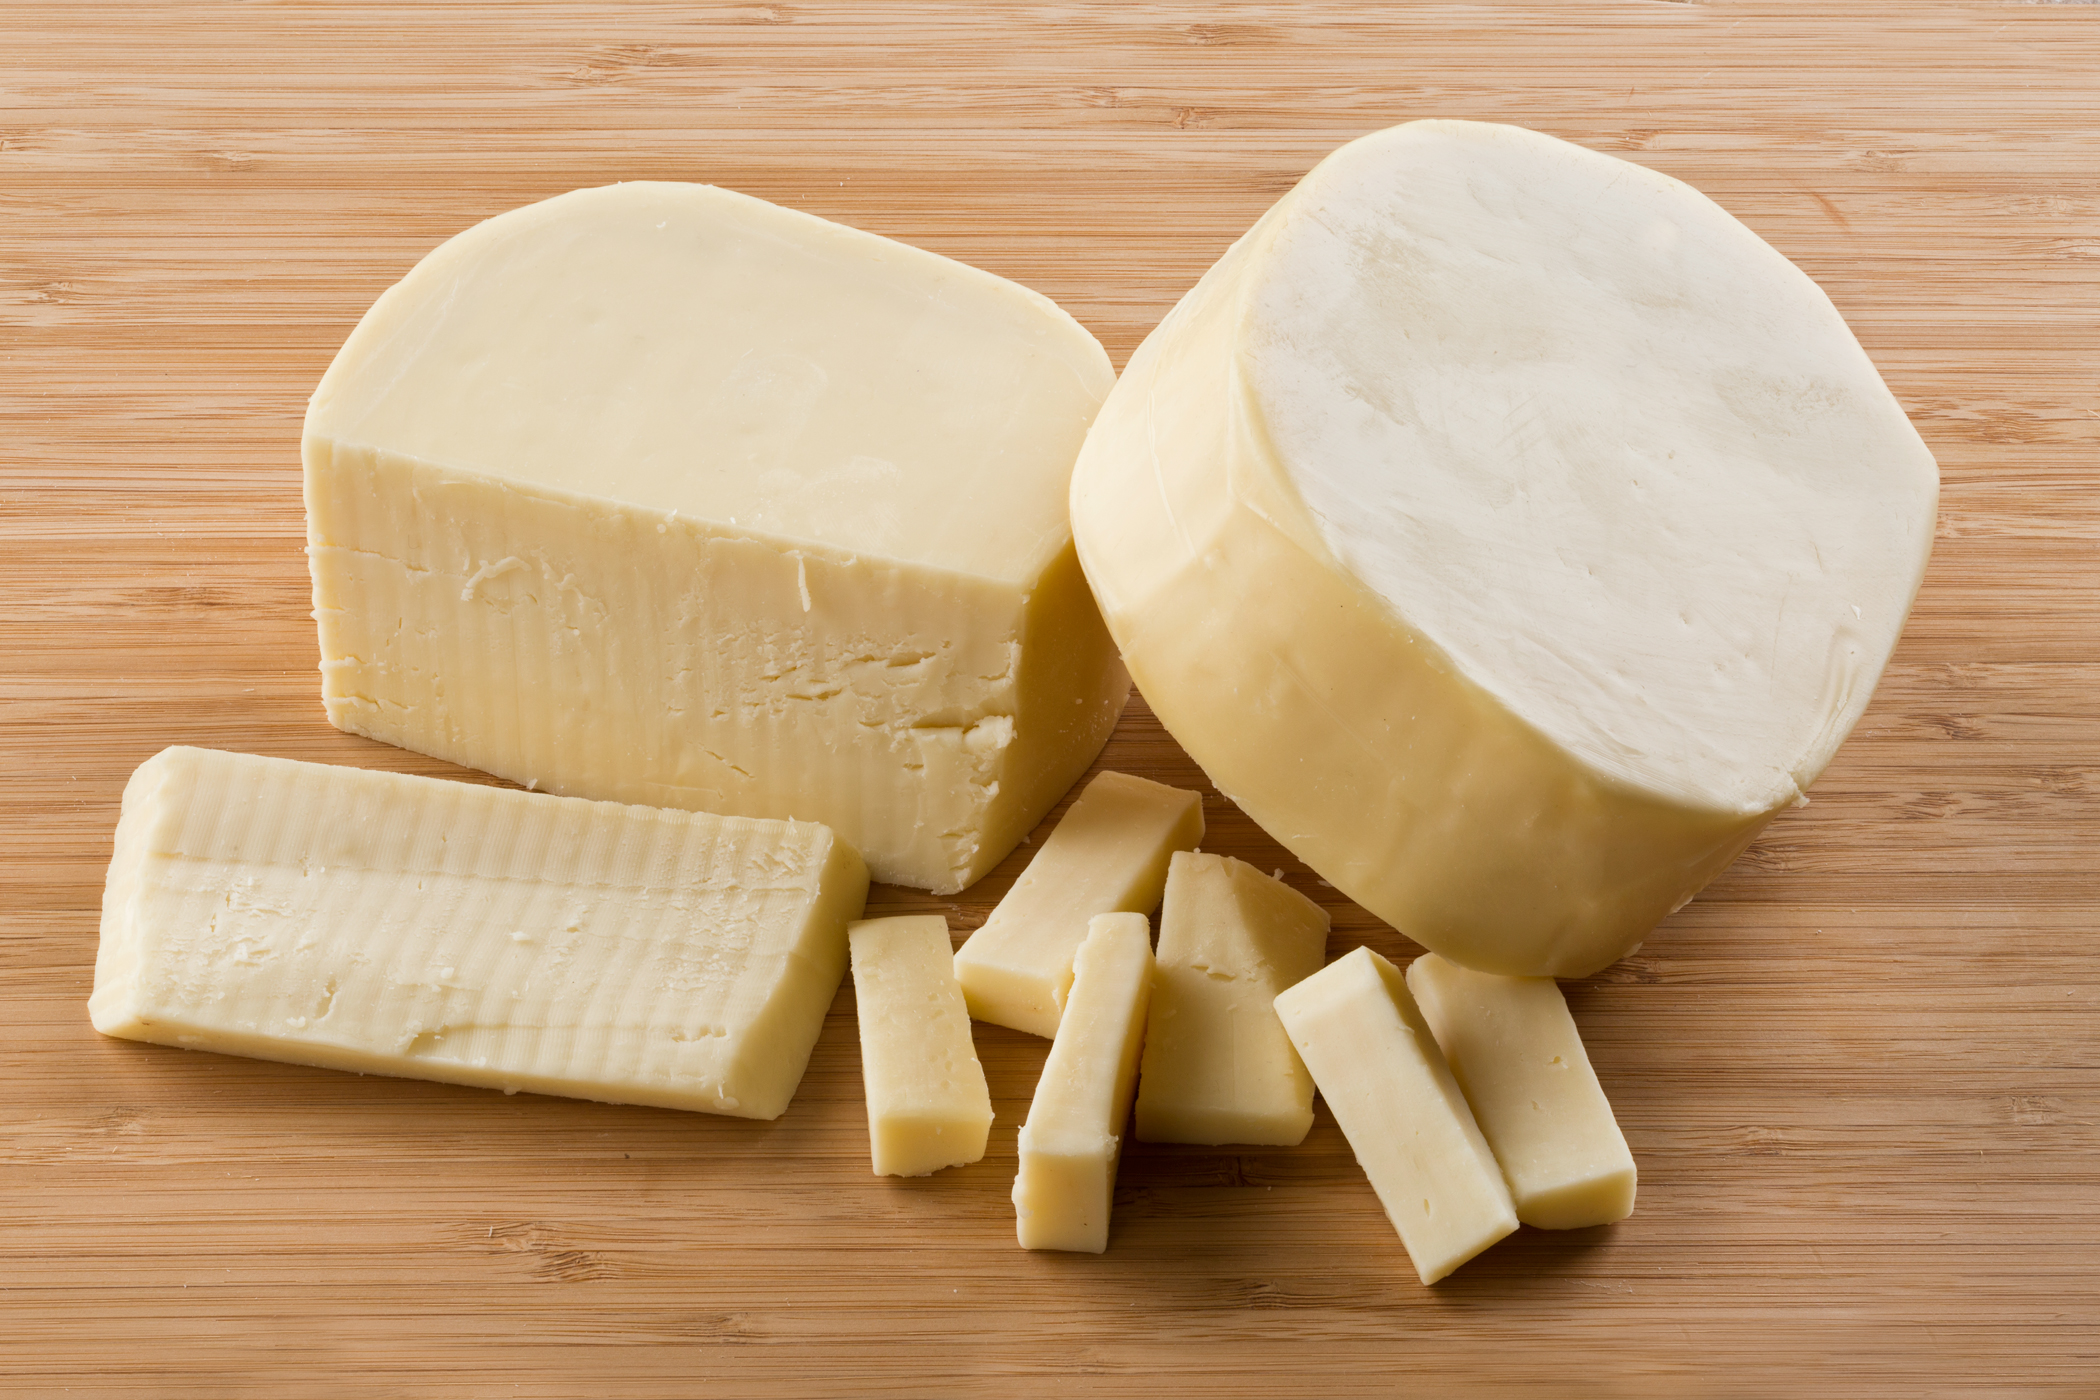 Naturally Smoked Provolone Buy Wholesale Cheese Online